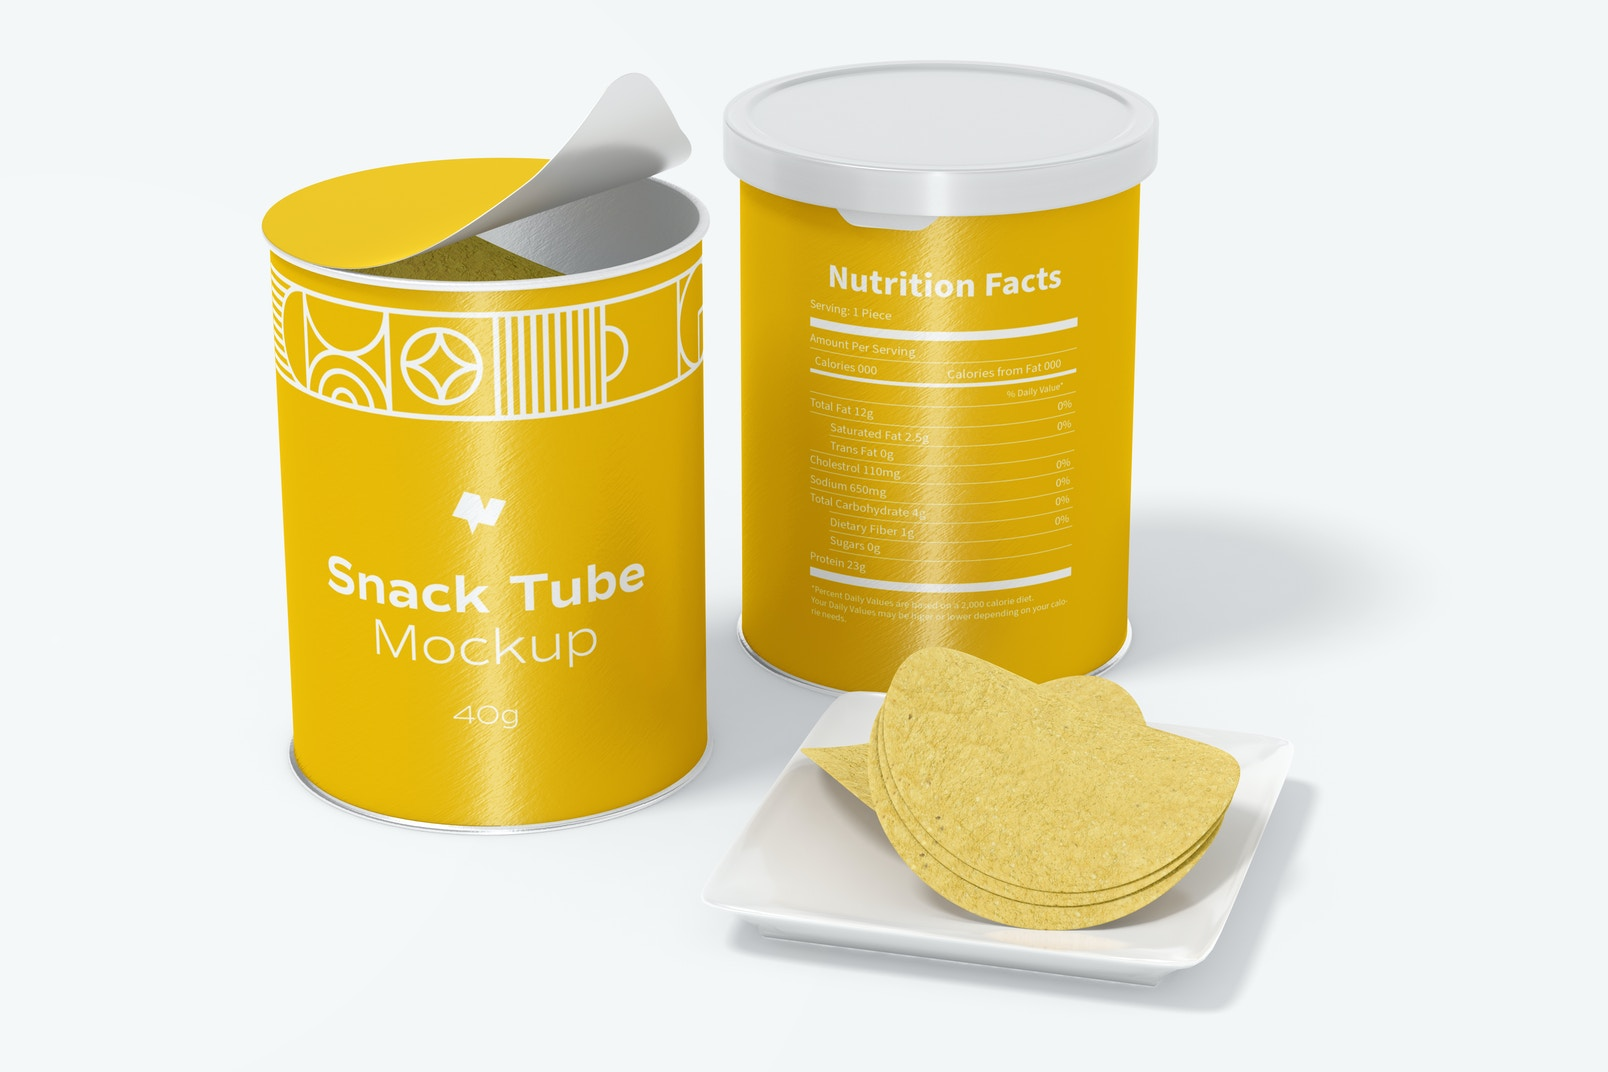 40g Snack Tube Mockup, Opened and Closed